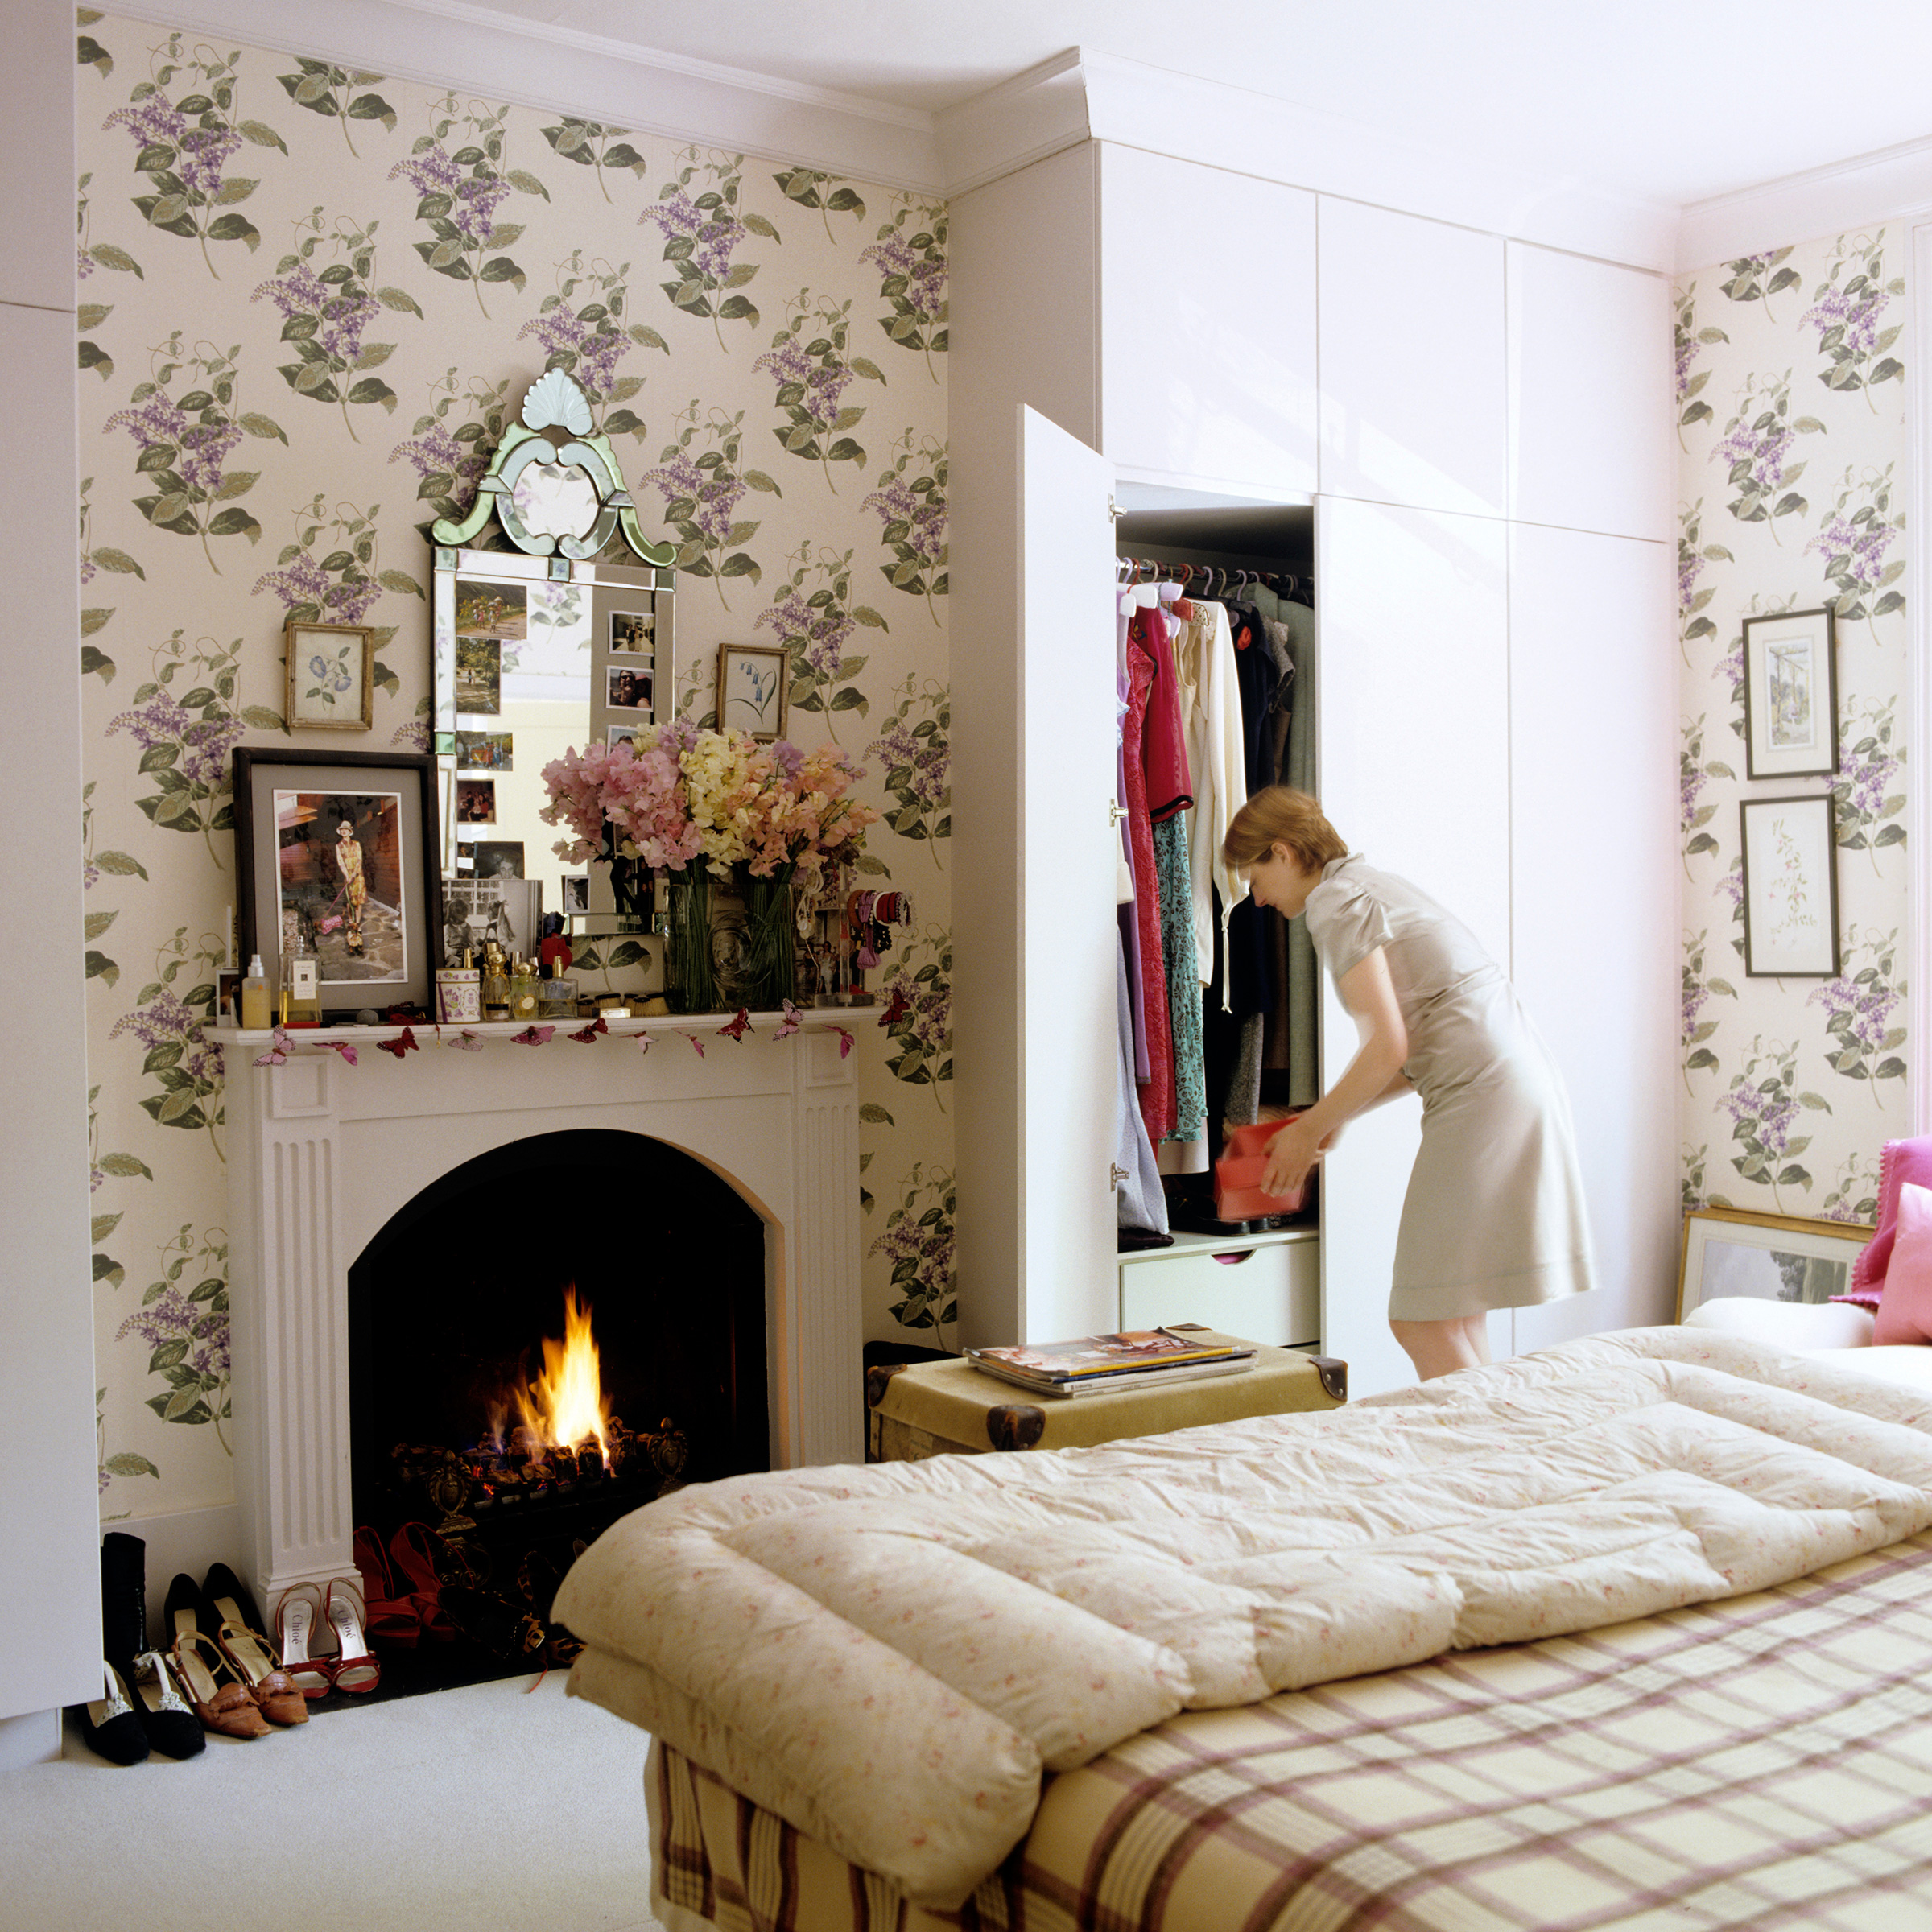 Cole and Son Wallpaper Madras Violet Rita Konig London Bedroom Plaid Throw Fireplace